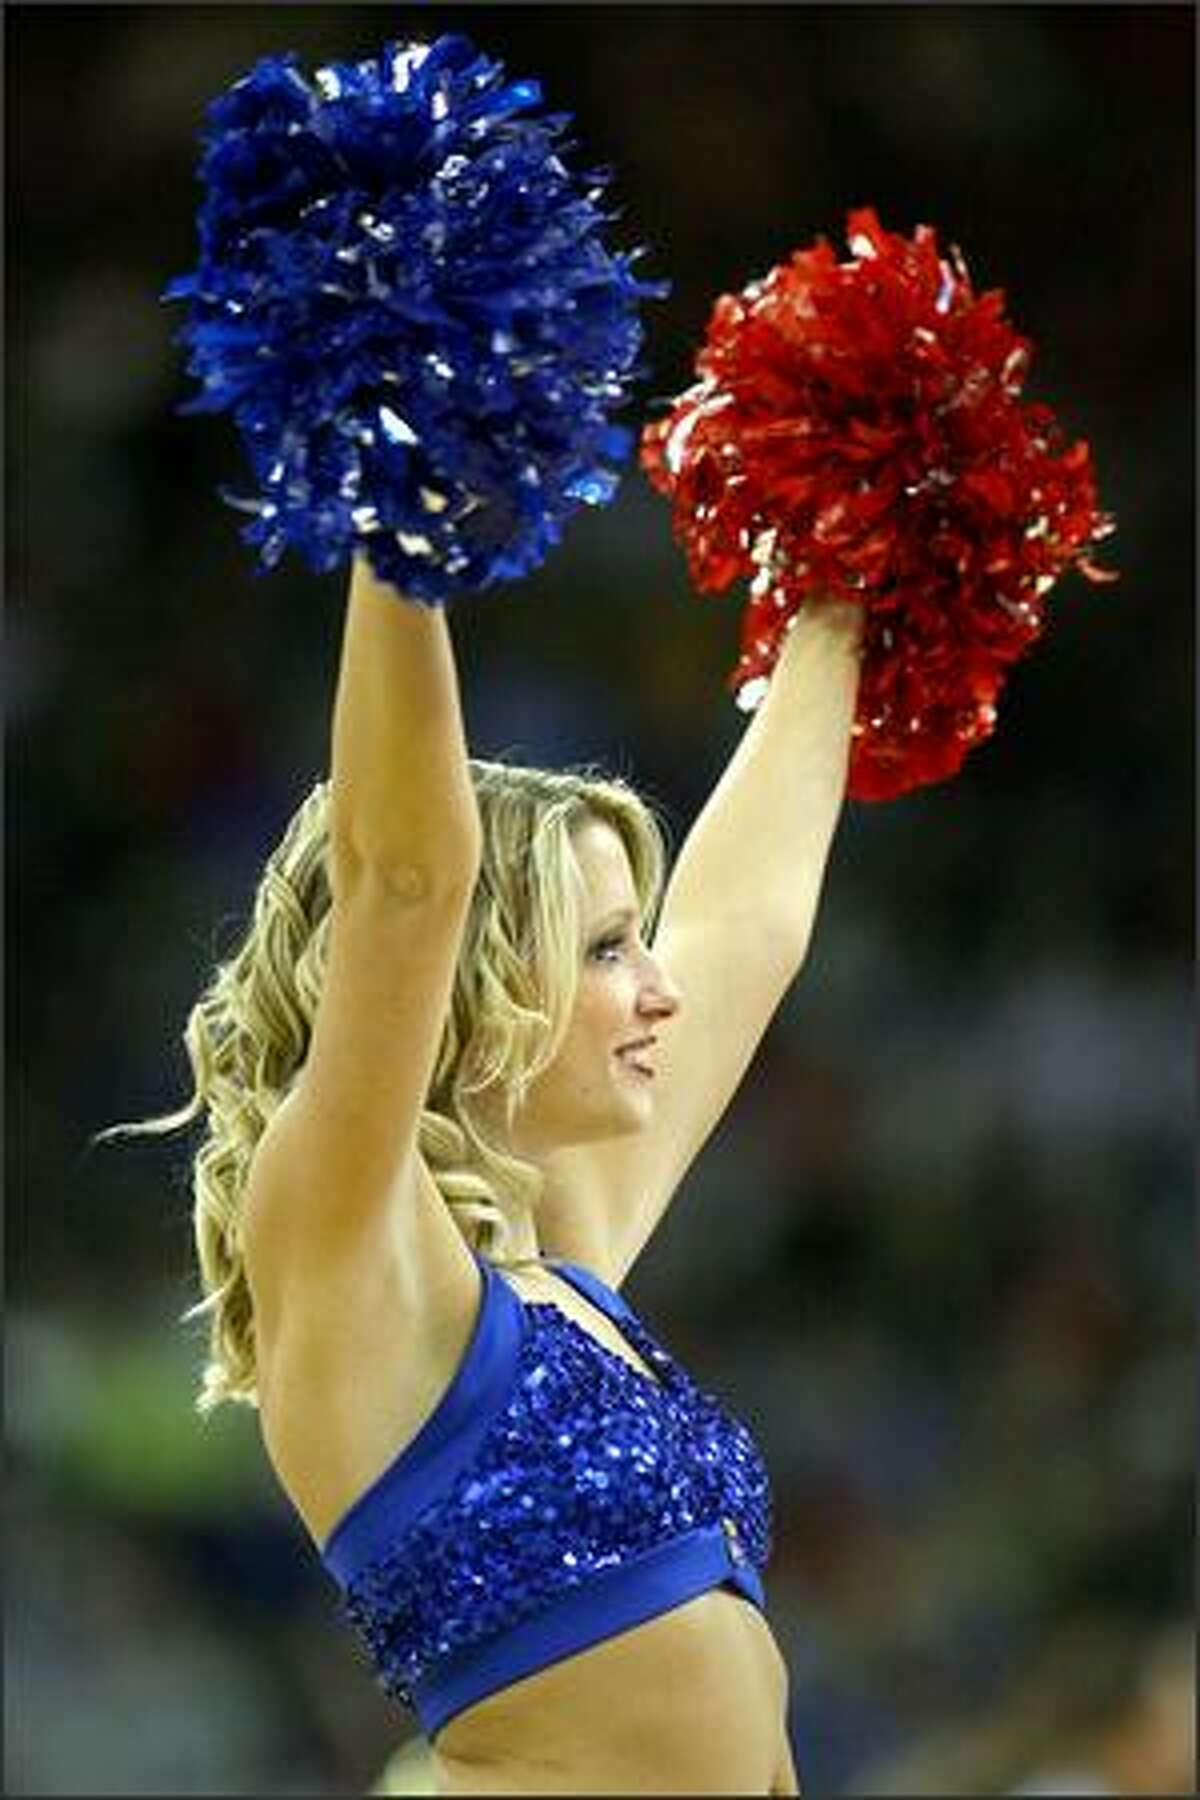 A cheerleader for the Kansas Jayhawks performs during the Midwest Region second round game against the UNLV Runnin' Rebels at the Qwest Center in Omaha, Neb.